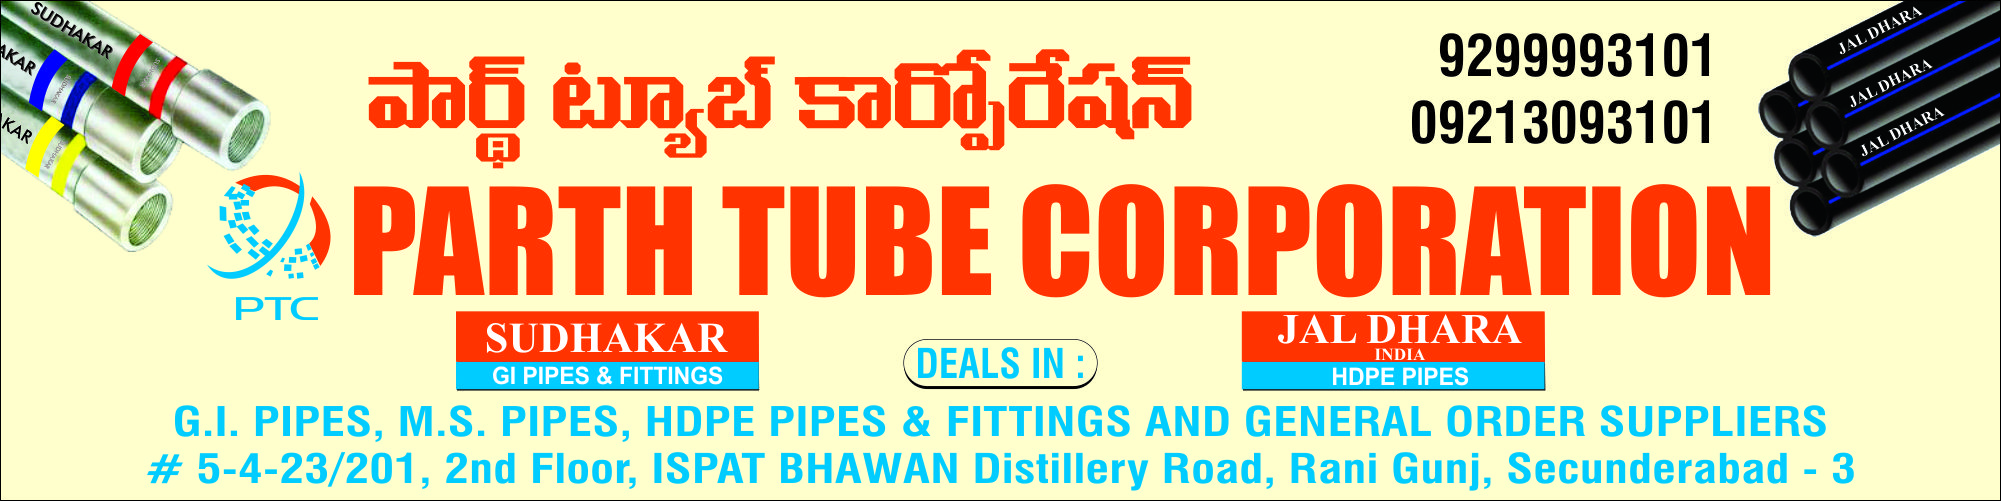 PARTH TUBE CORPORATION